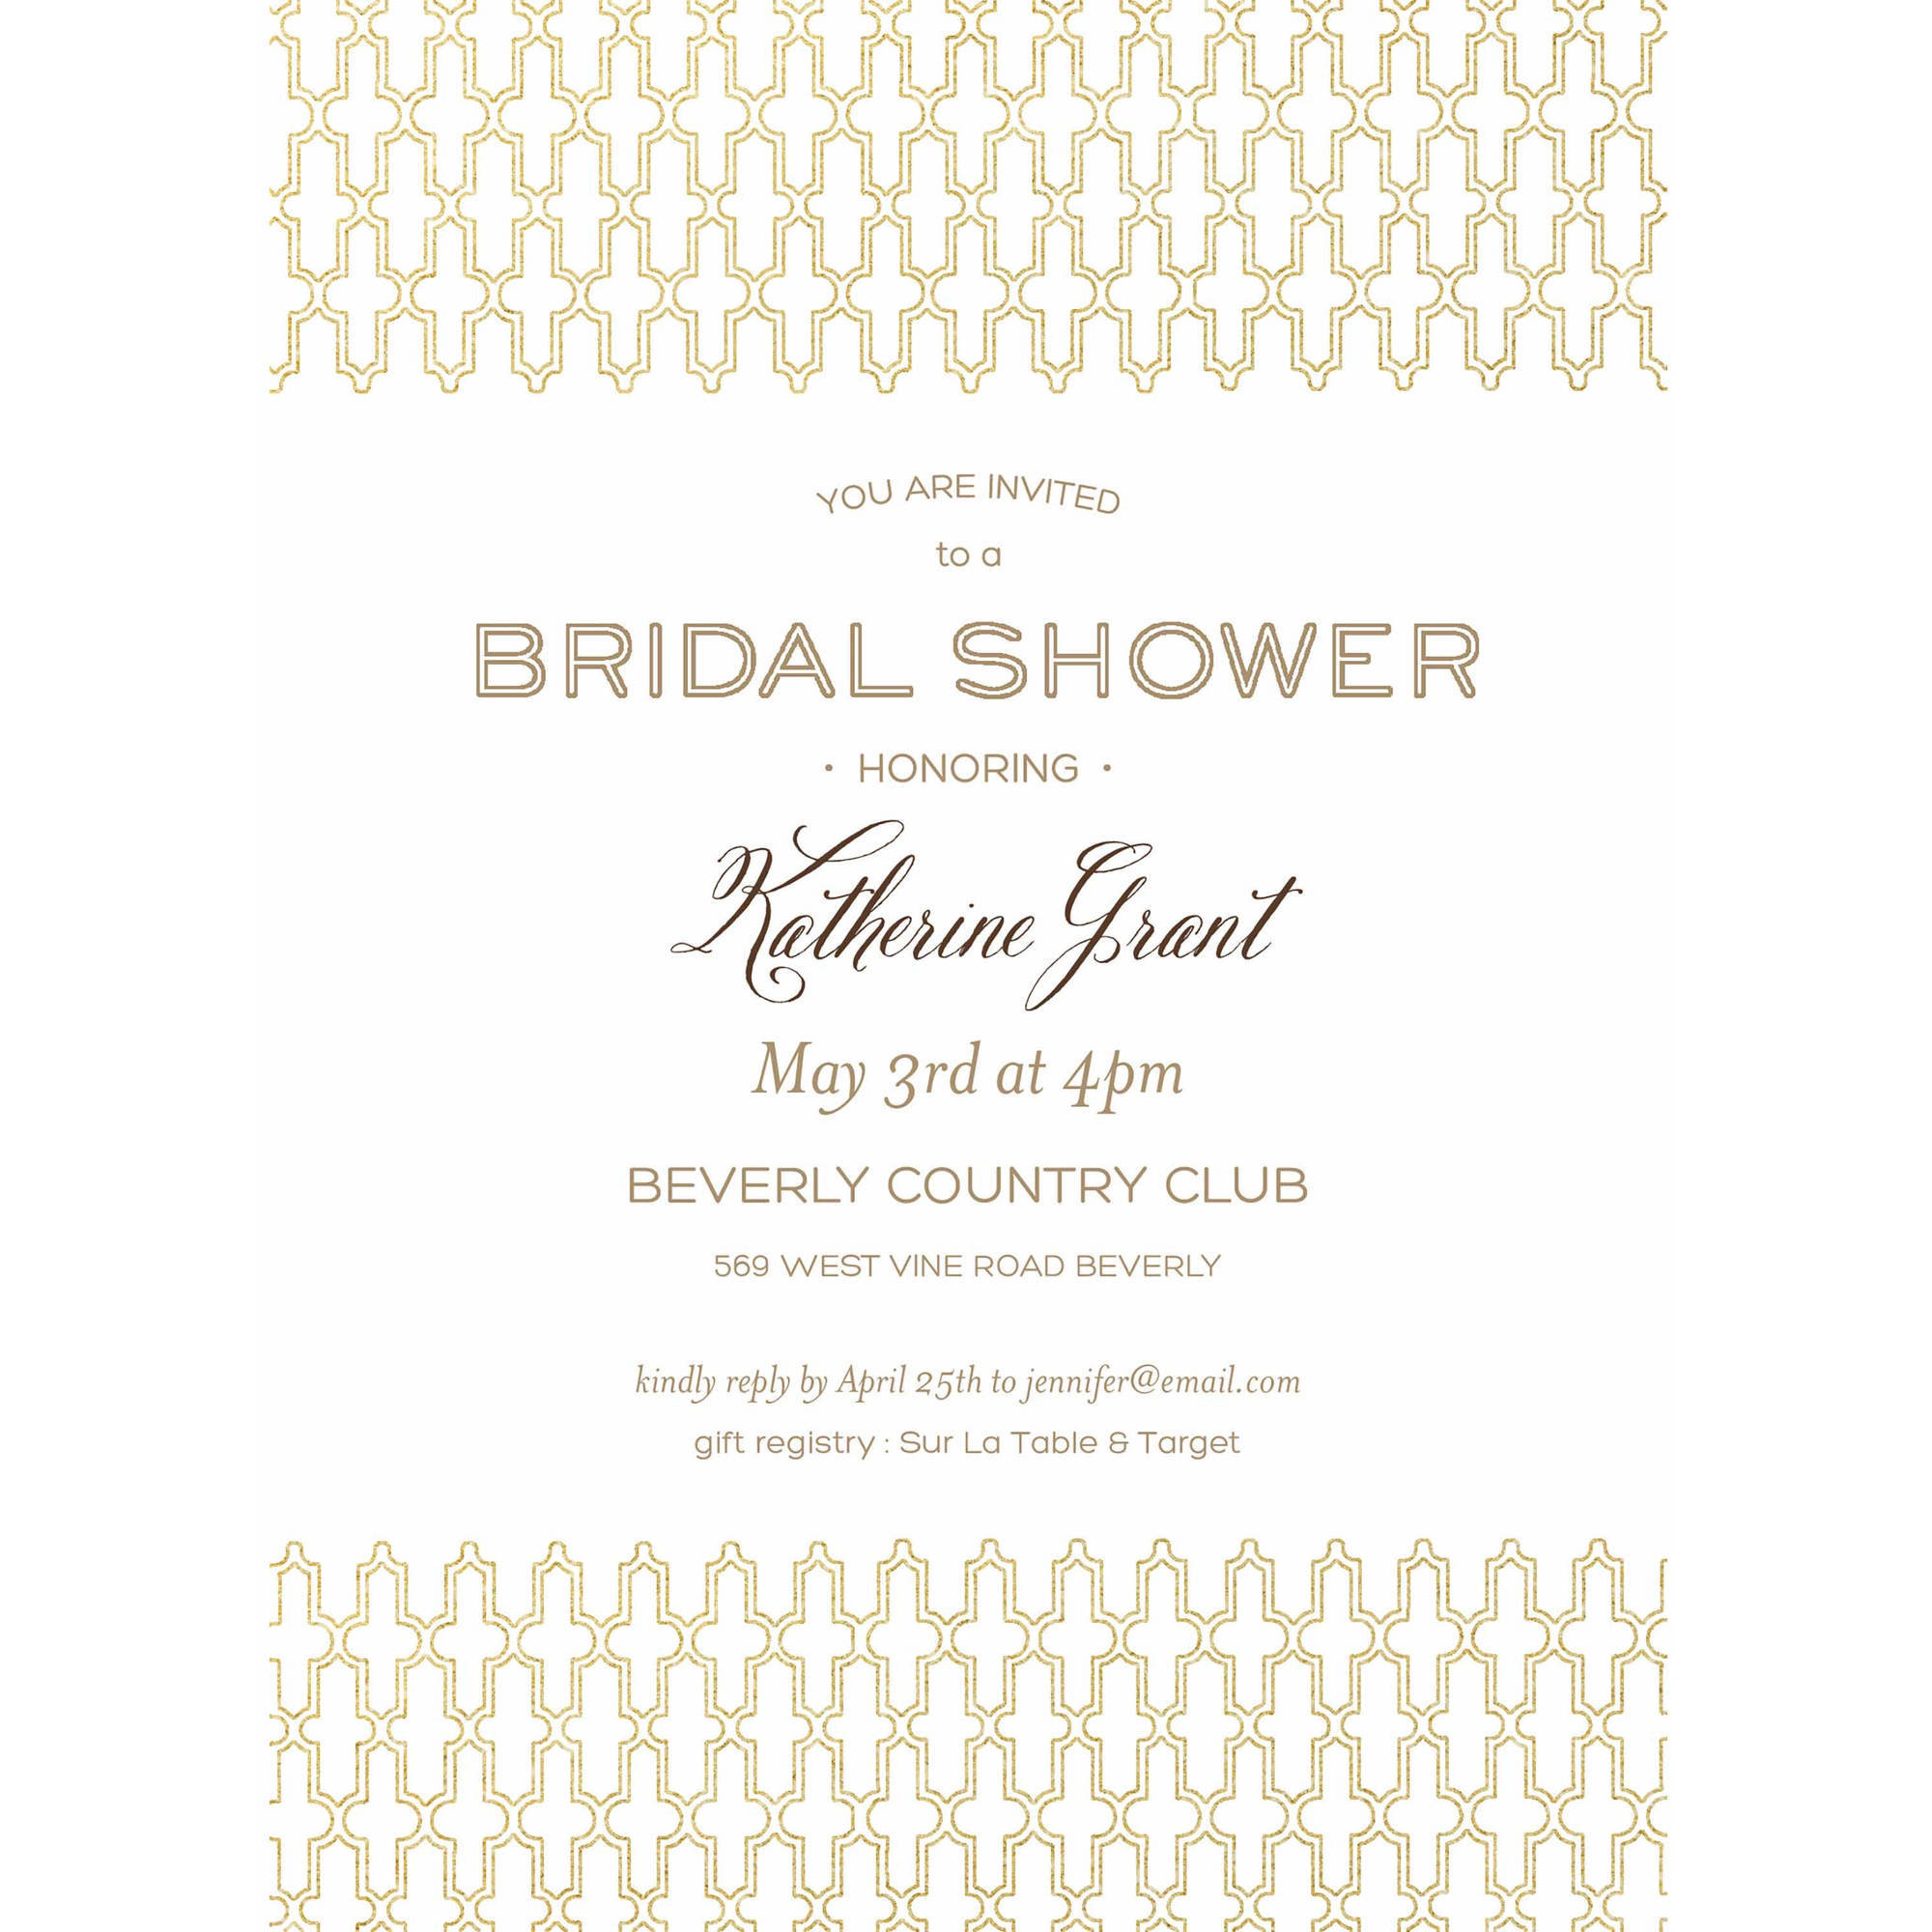 Loving Lattice Standard Bridal Shower Invitation